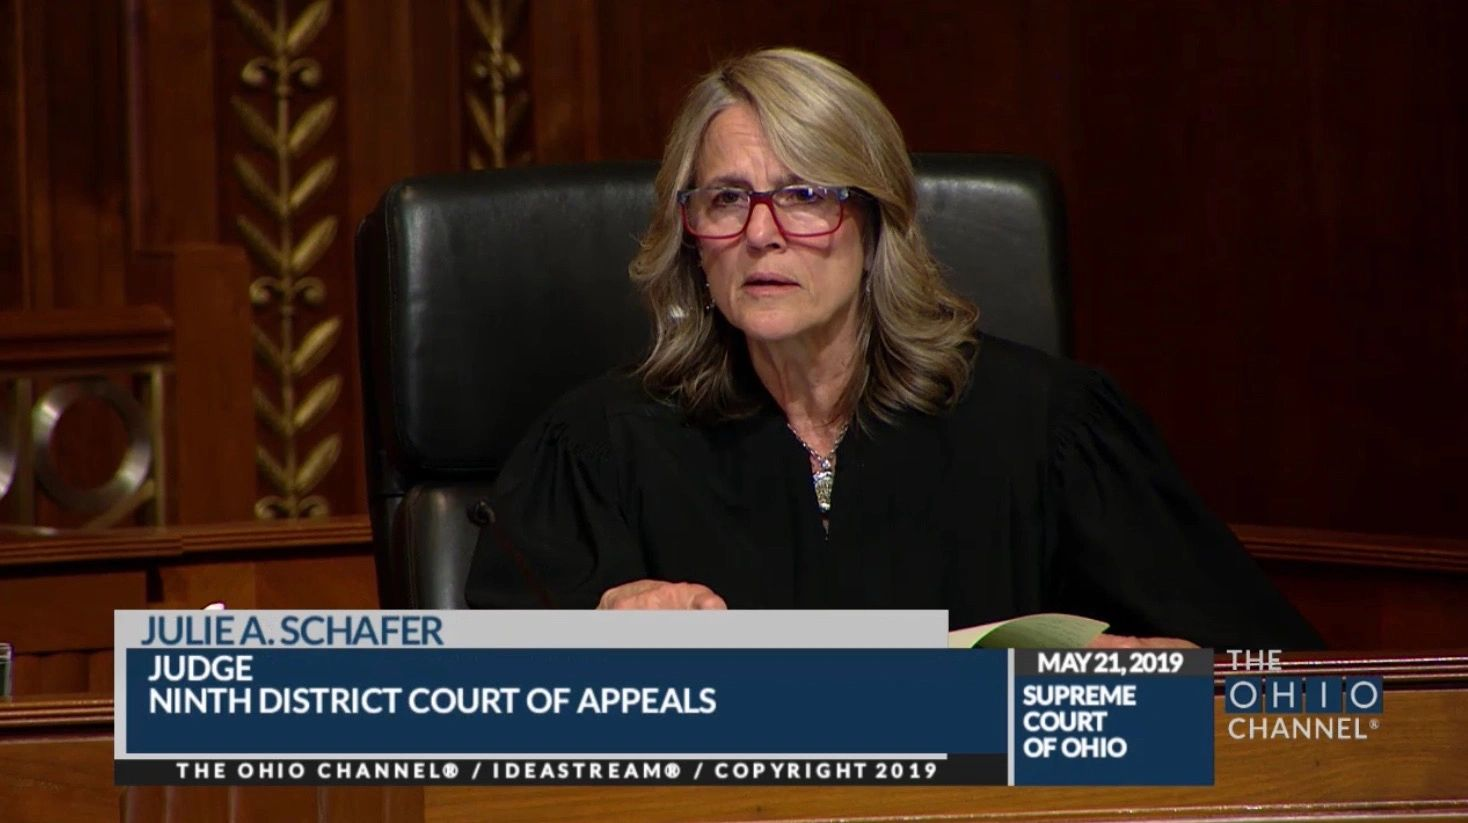 Judge Julie Schafer sits as visiting Judge on the Ohio Supreme Court on May 21, 2019.